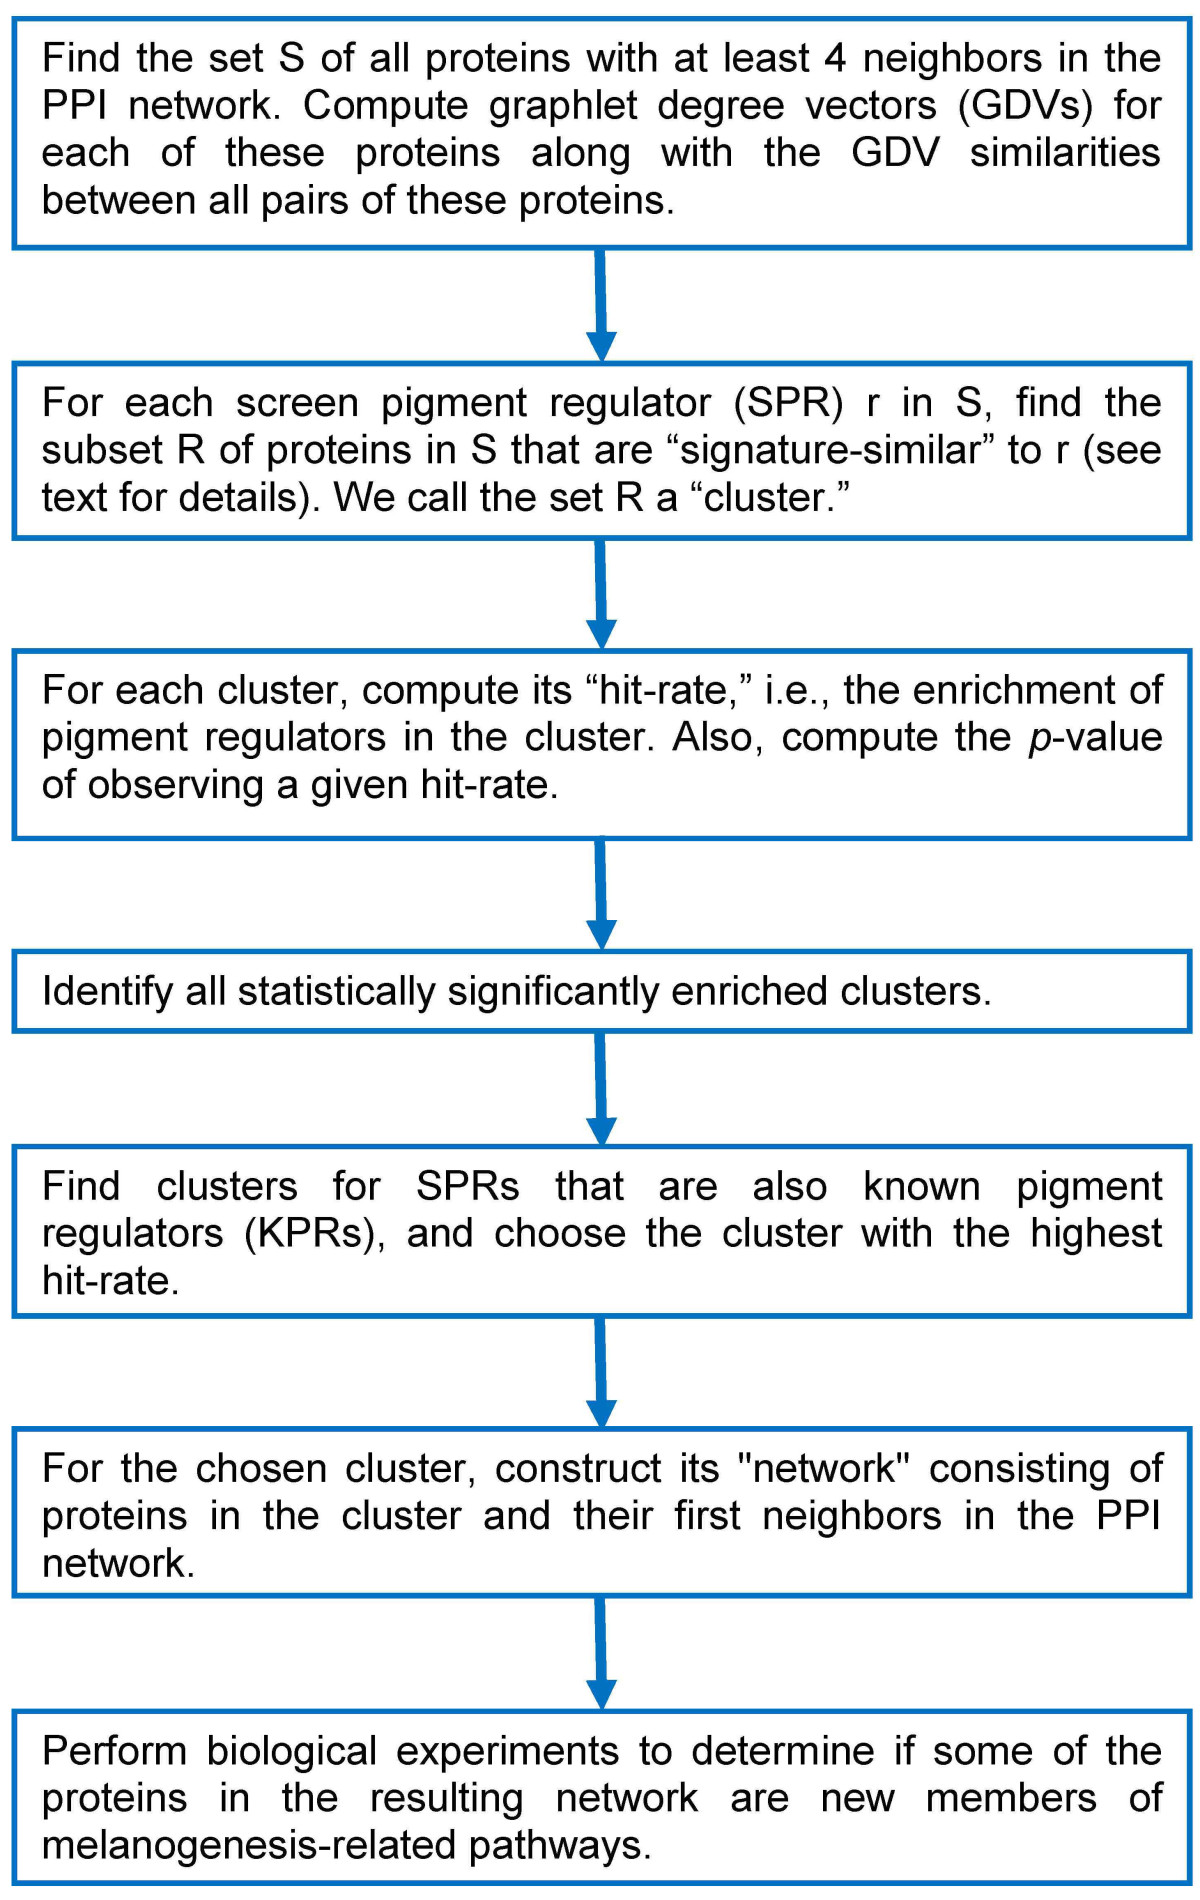 http://static-content.springer.com/image/art%3A10.1186%2F1752-0509-4-84/MediaObjects/12918_2009_Article_473_Fig2_HTML.jpg